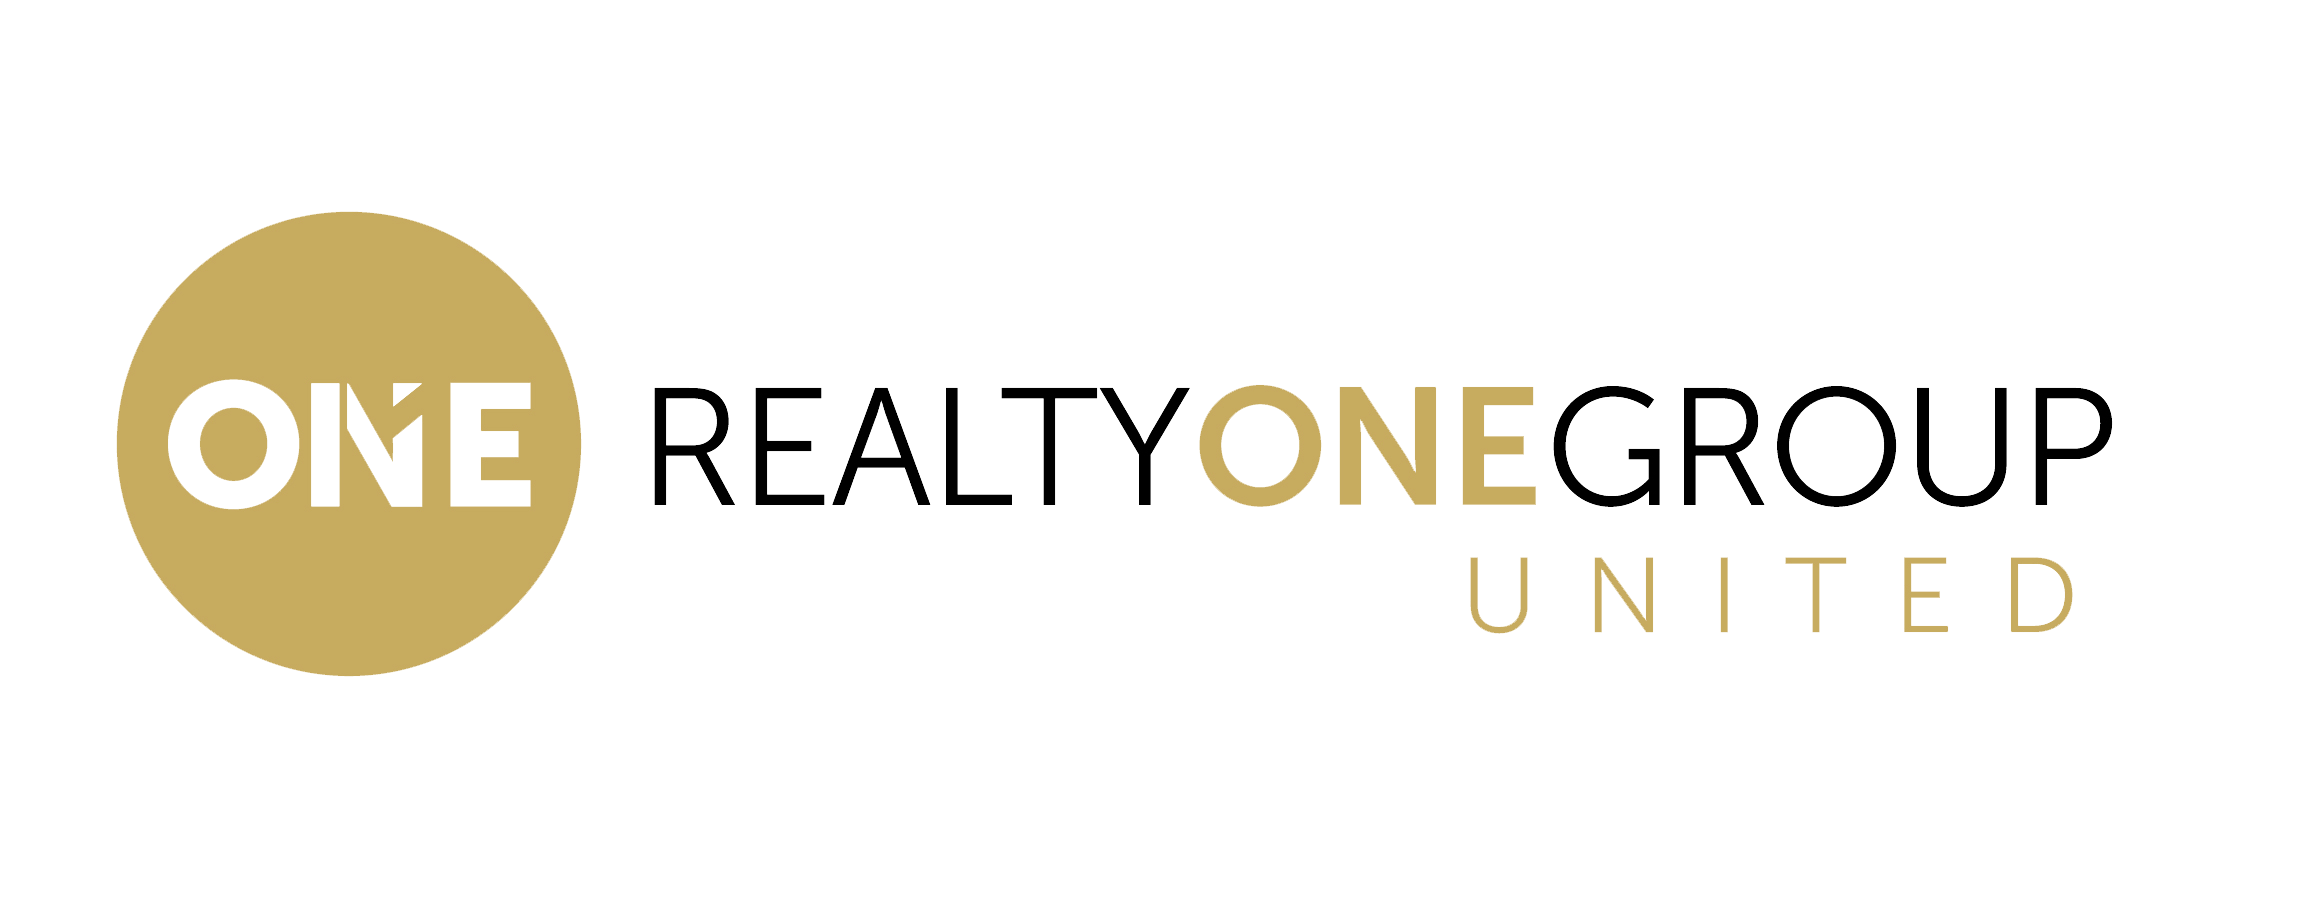 Realty One Decal new black tranSparent